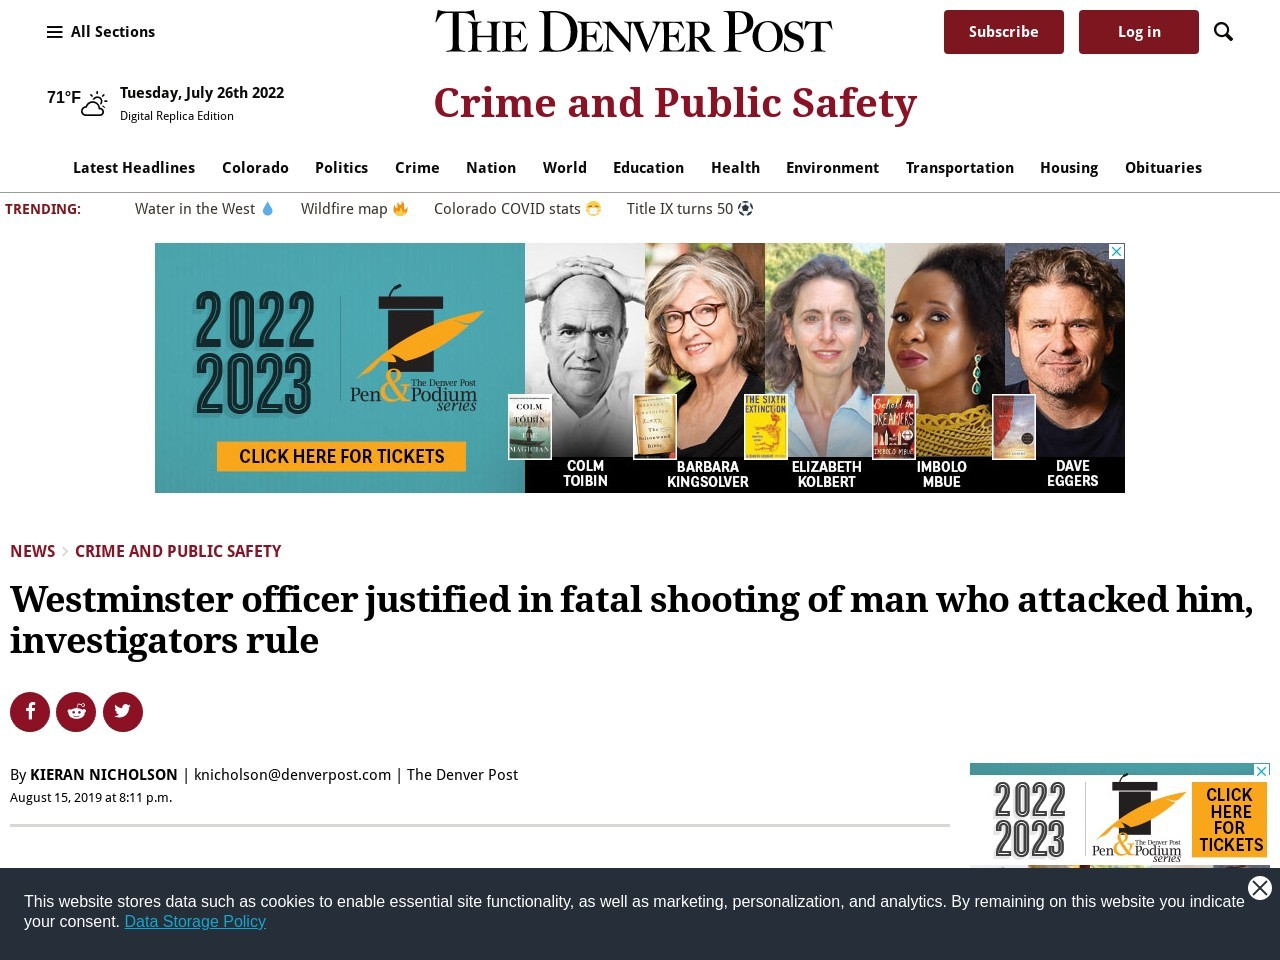 Westminster officer justified in fatal shooting of man who attacked him, investigators rule